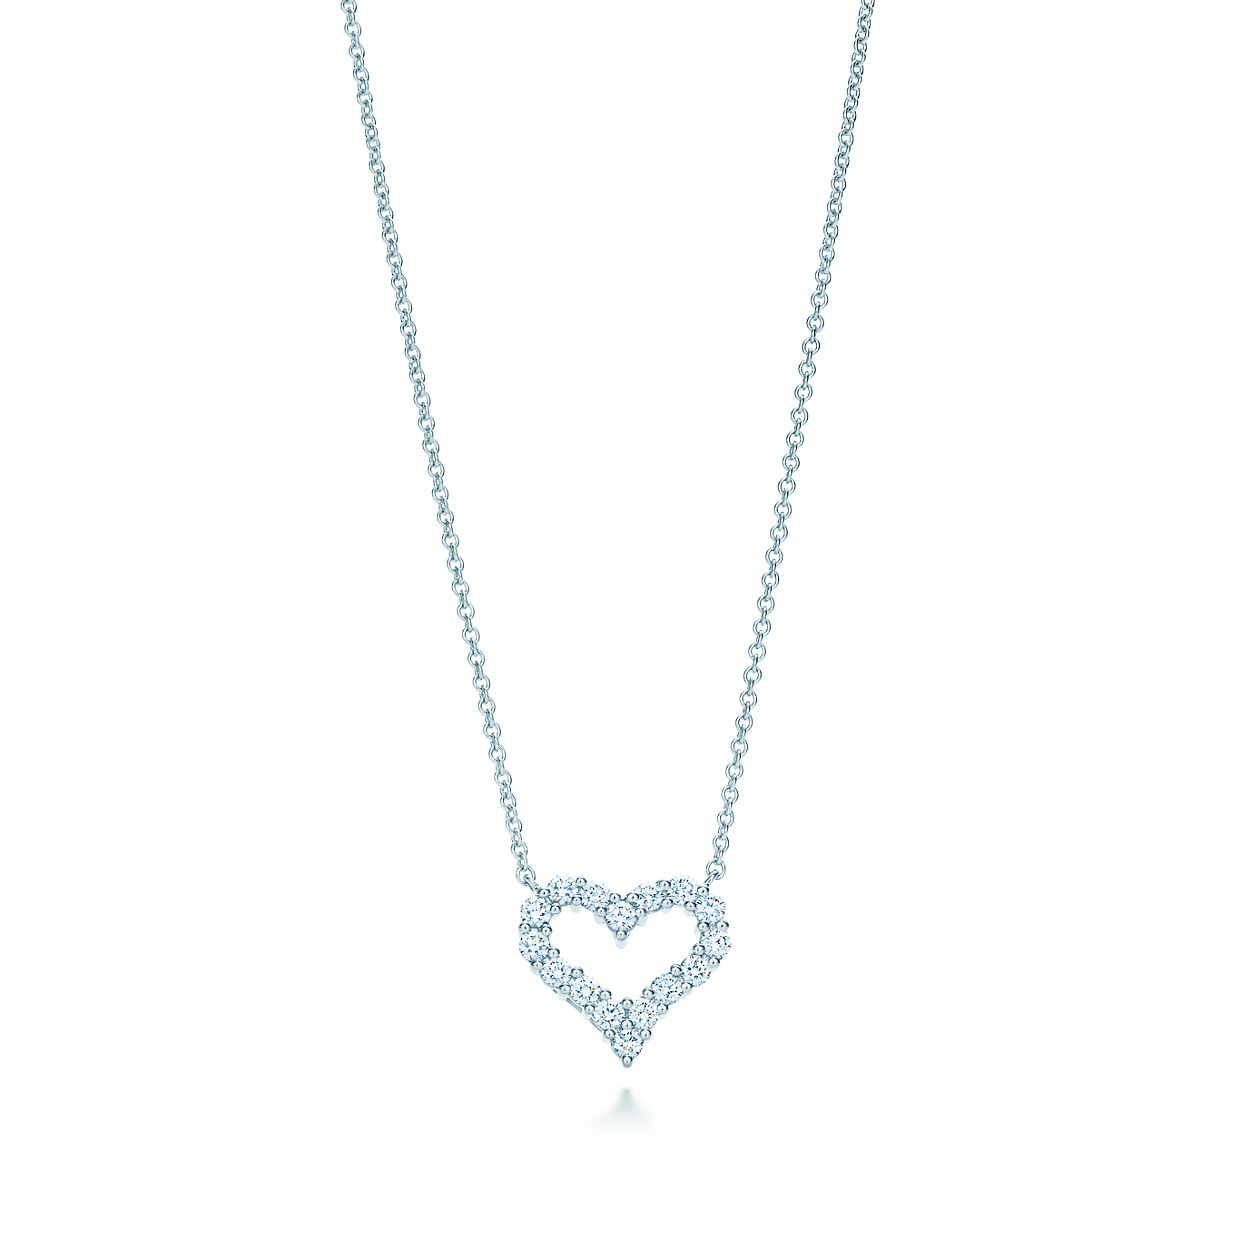 collections accents diamond platinum necklaces pearl signature artistic necklace south cp sea pendant with innovations